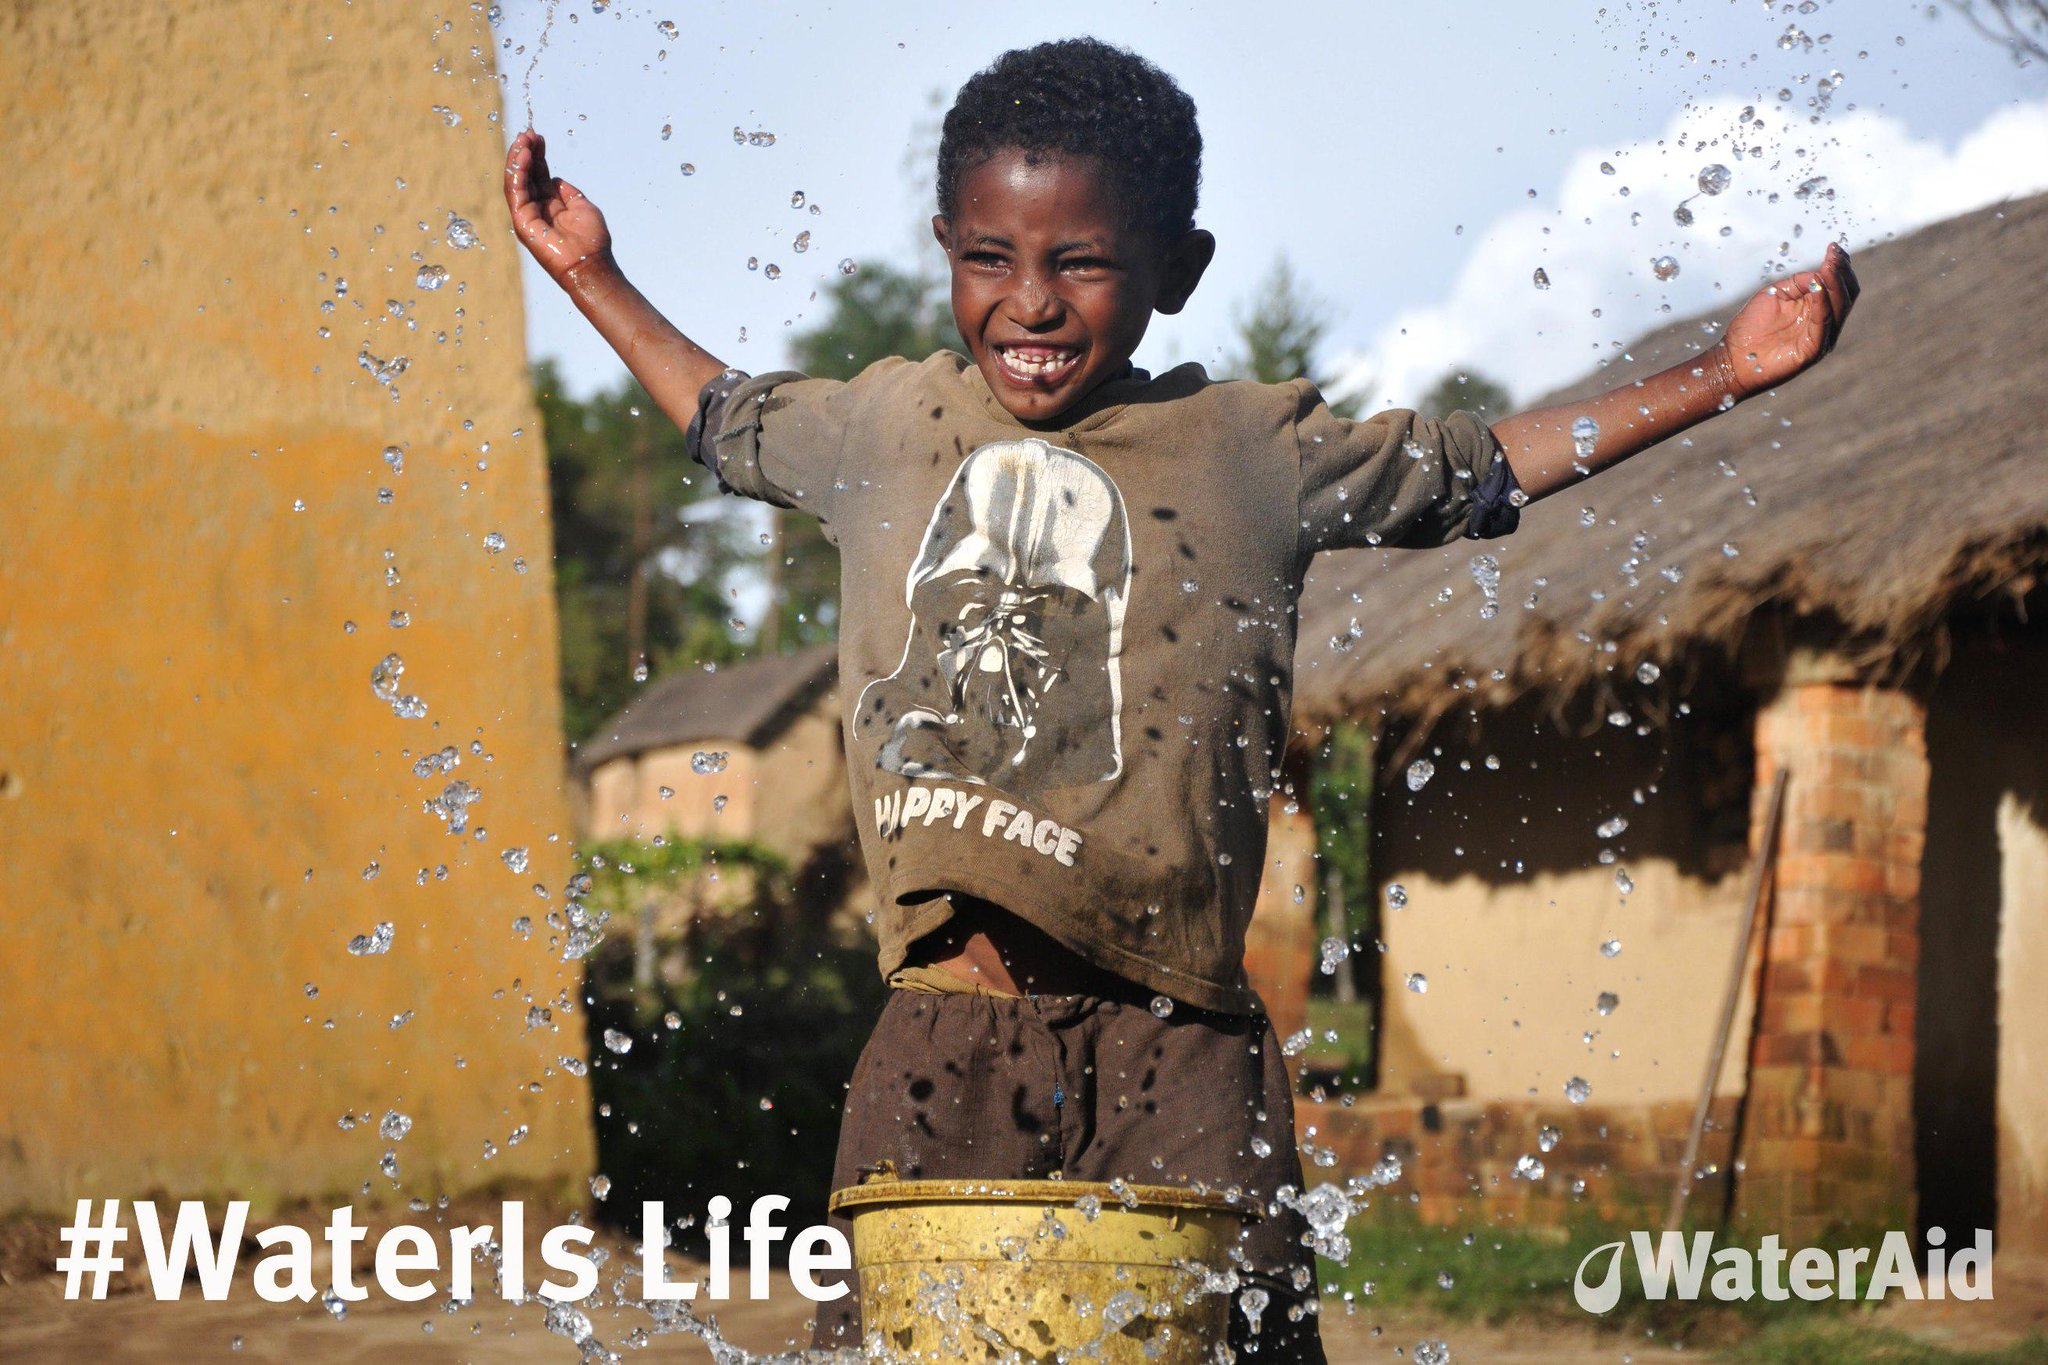 RT @wateraid: On #WorldWaterDay let's come together to make sure #EveryoneEverywhere has clean water by 2030 http://t.co/C9d6zdZNVn http://…